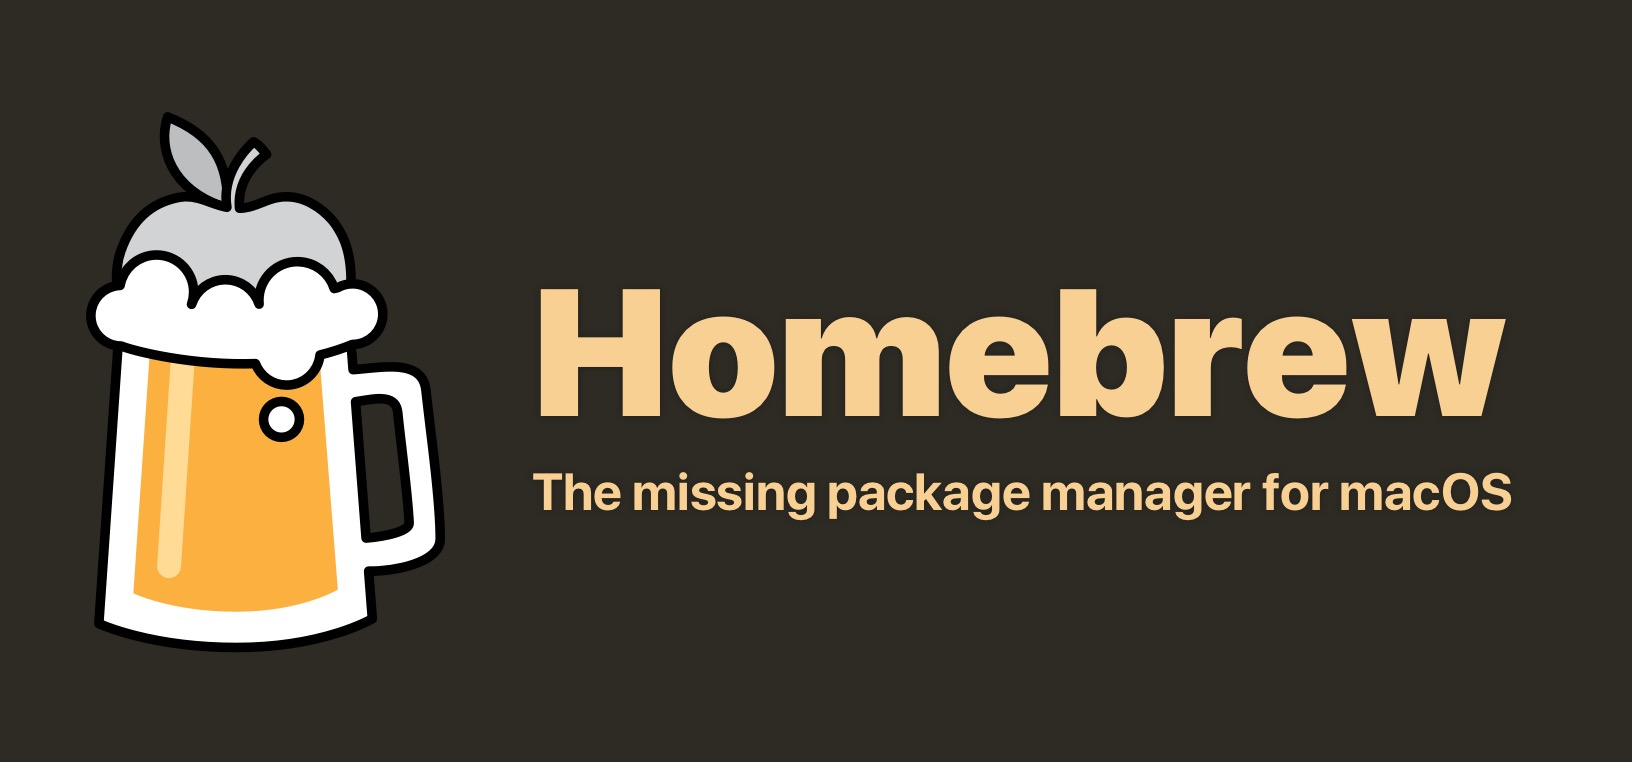 The missing package manager for macOS — The missing package manager for macOS